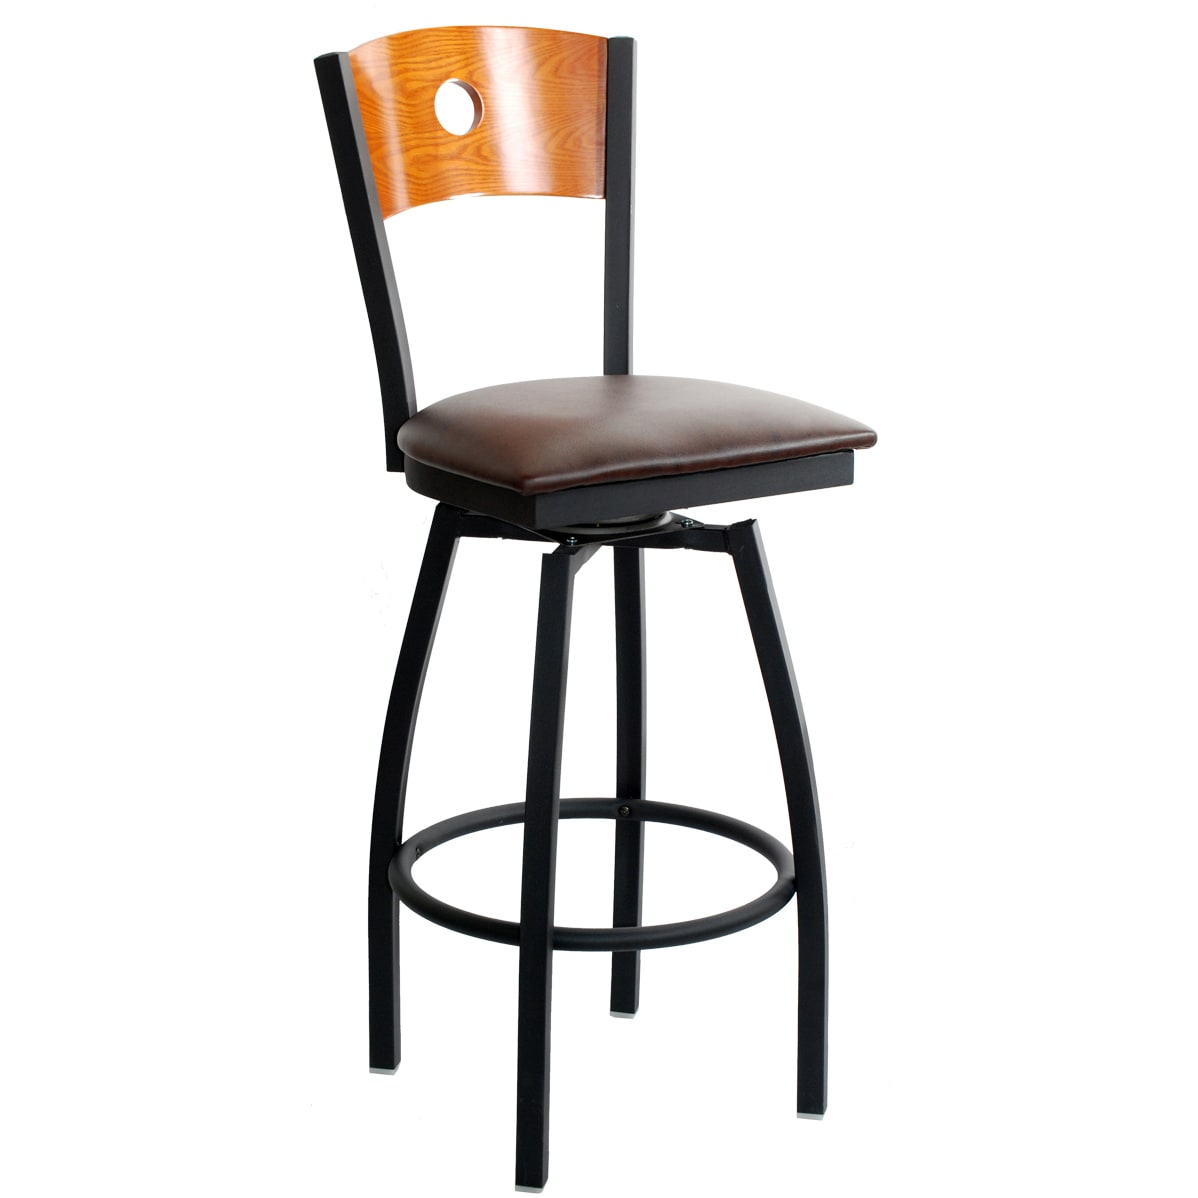 Cool Interchangeable Back Metal Swivel Bar Stool With A Circled Back Machost Co Dining Chair Design Ideas Machostcouk